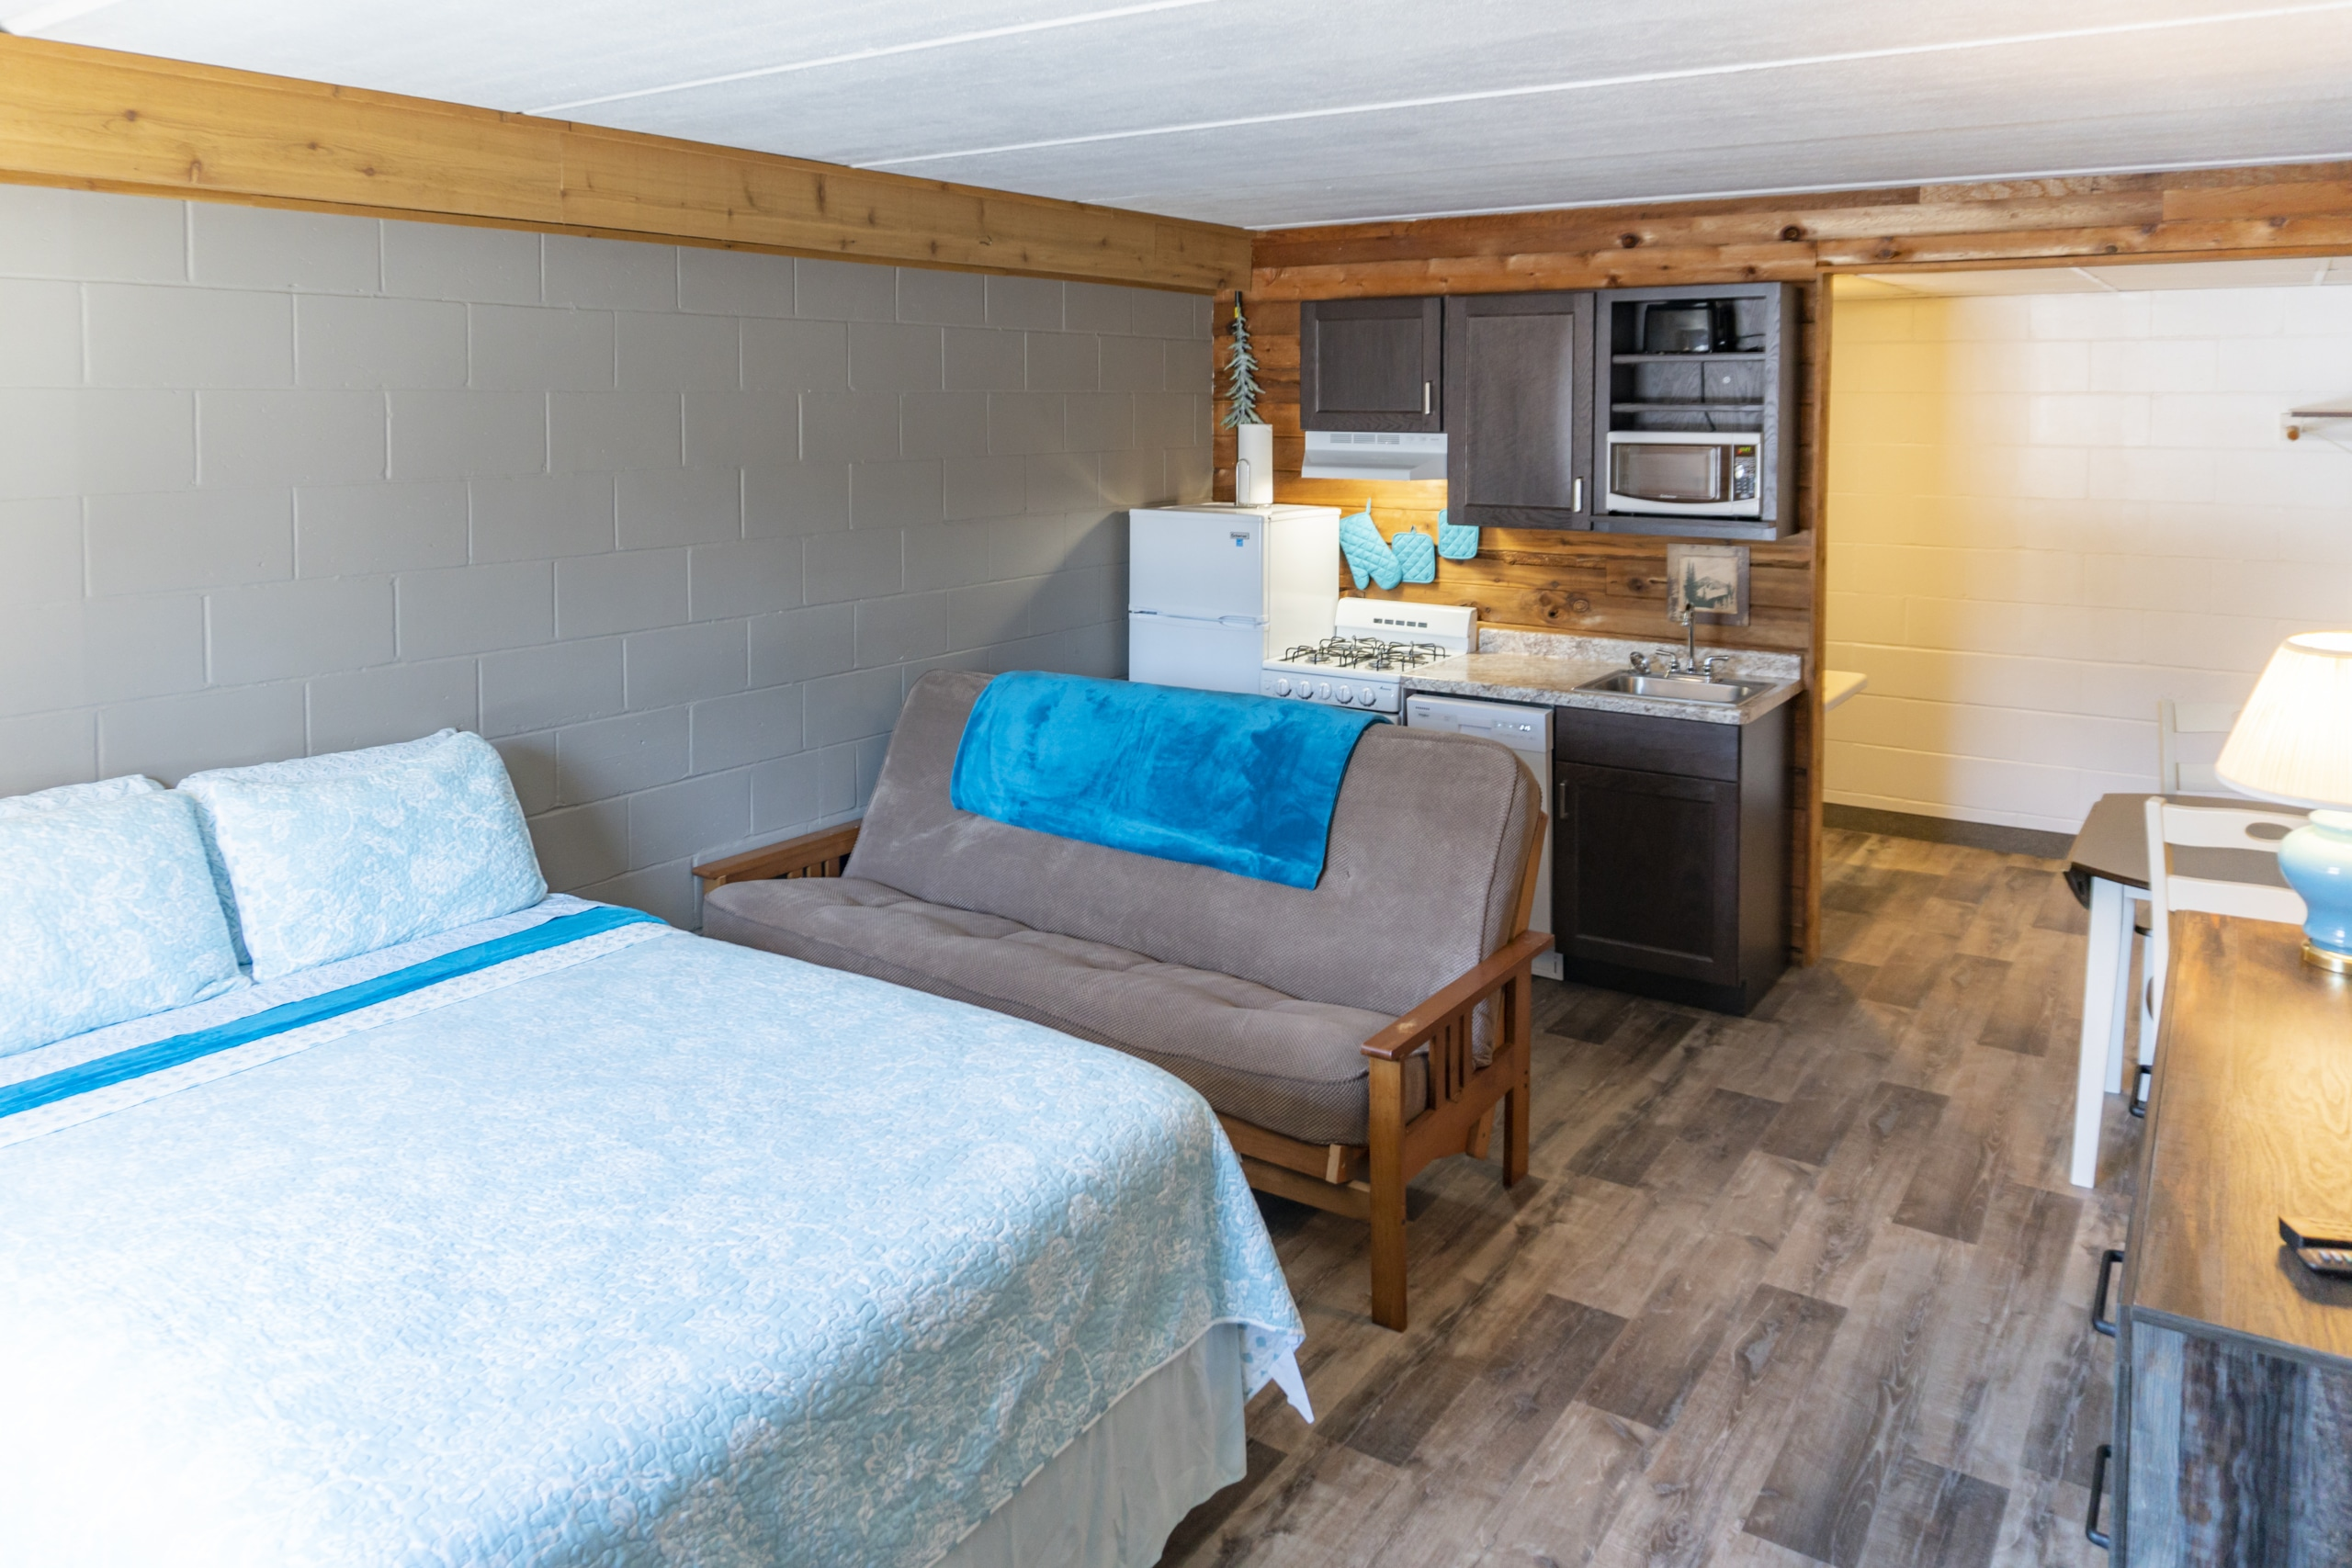 Motel Room with Kitchenette